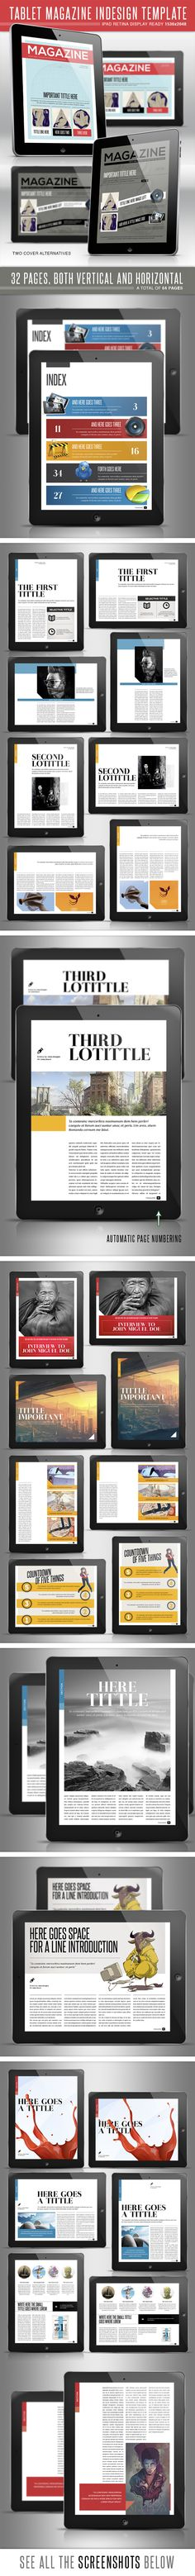 Tablet Magazine Design 2 by Lucas Iacono, via Behance